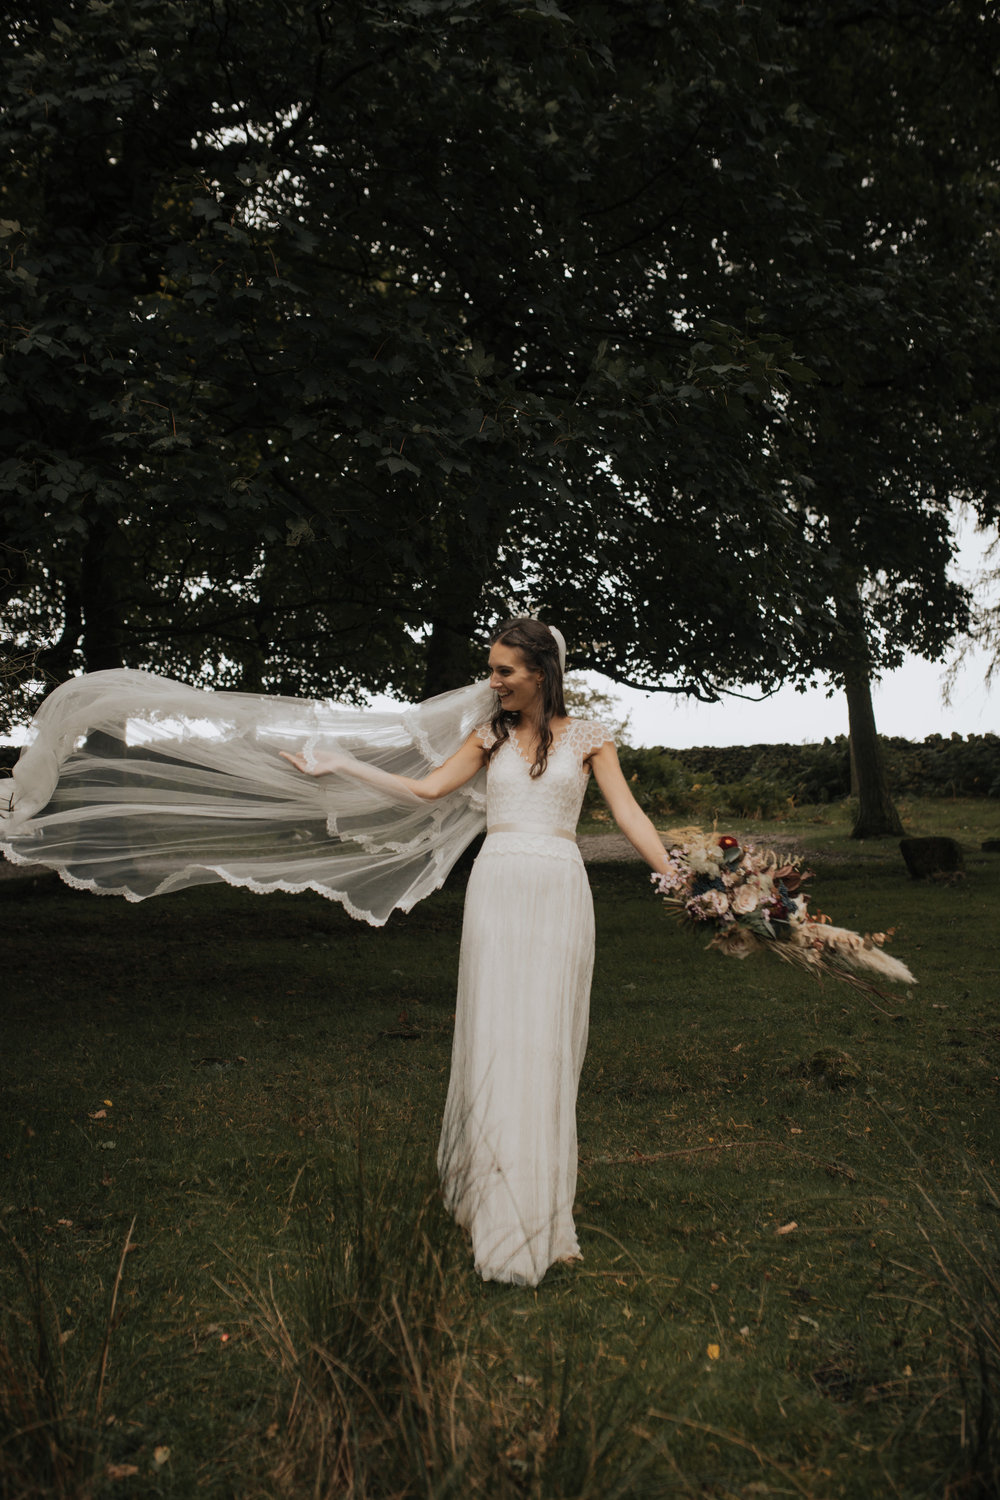 Joasia-Kate-Beaumont-Bohemian-Lace-Wedding-Dress-Peak-District-Sheffield-Wedding-42.jpg